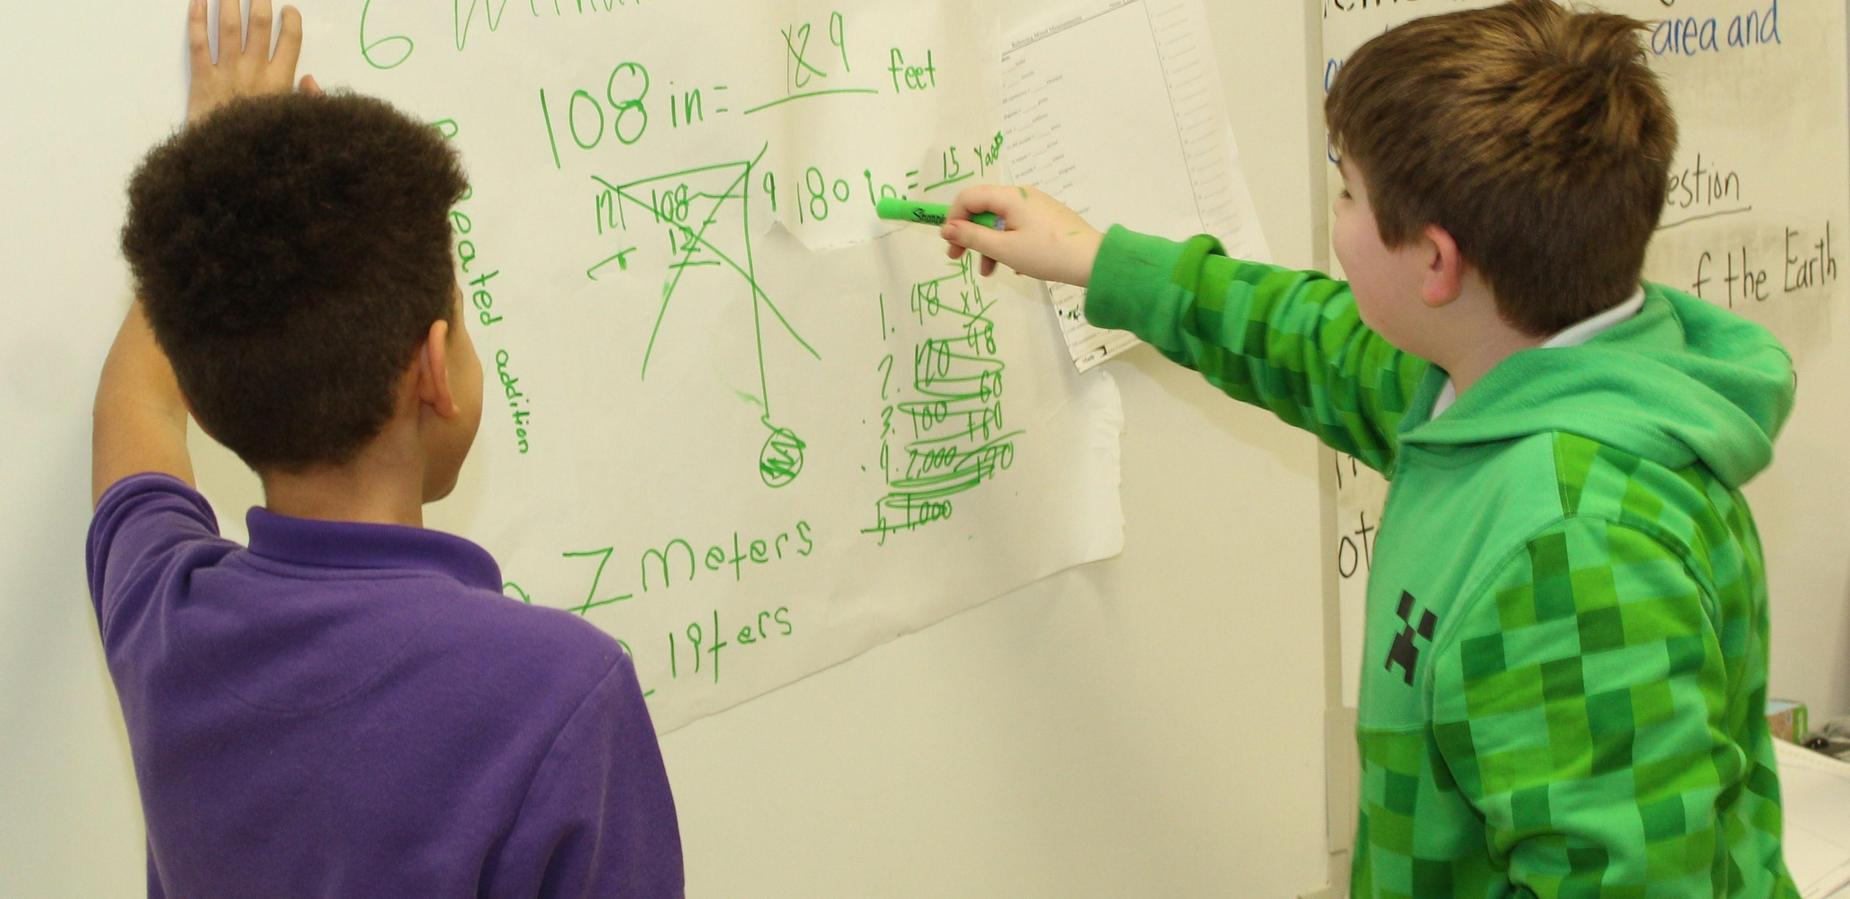 Two boys working a math problem on the board.